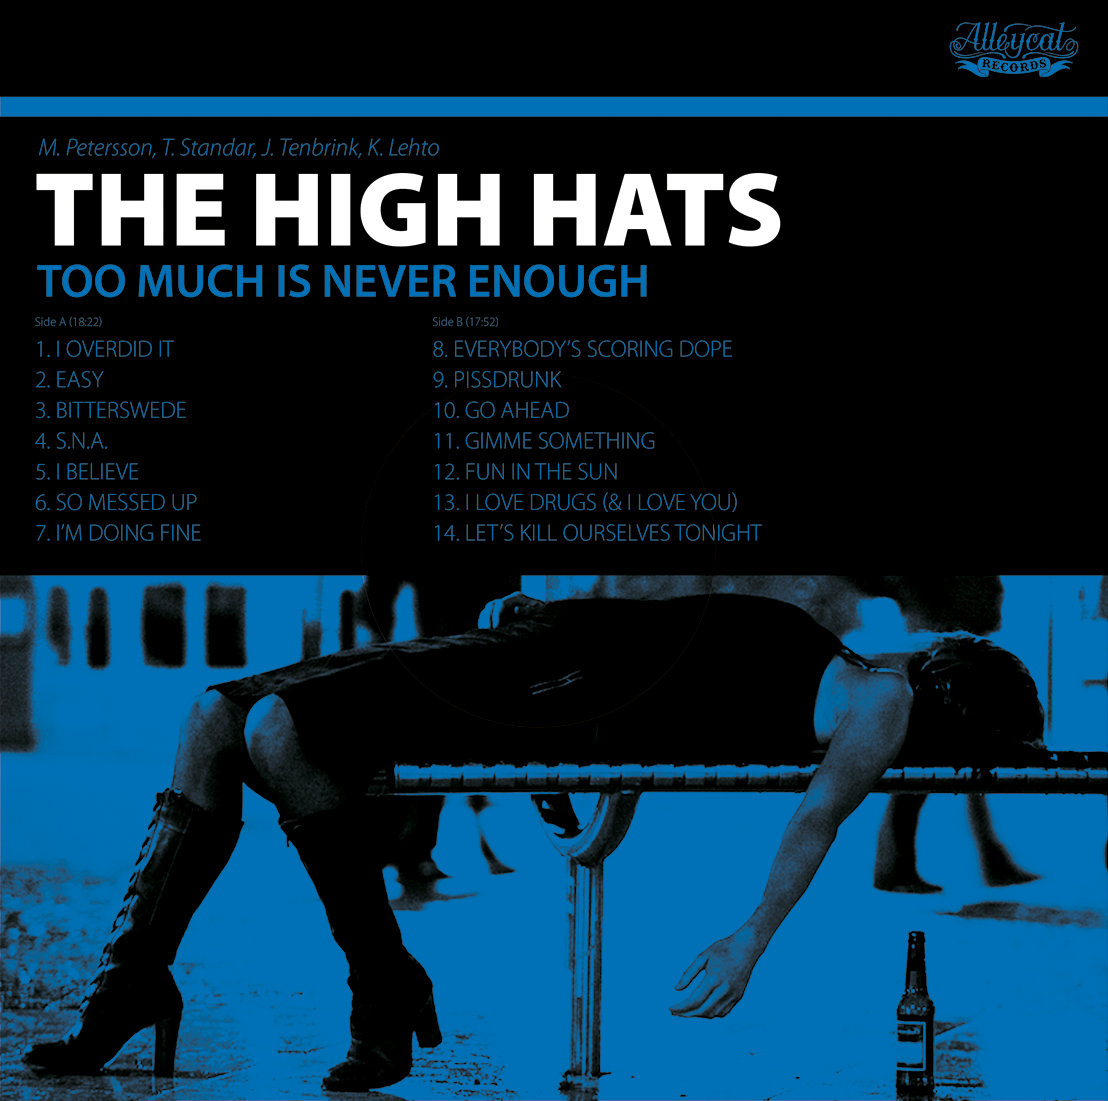 I Love Drugs (& I Love You) | The High Hats